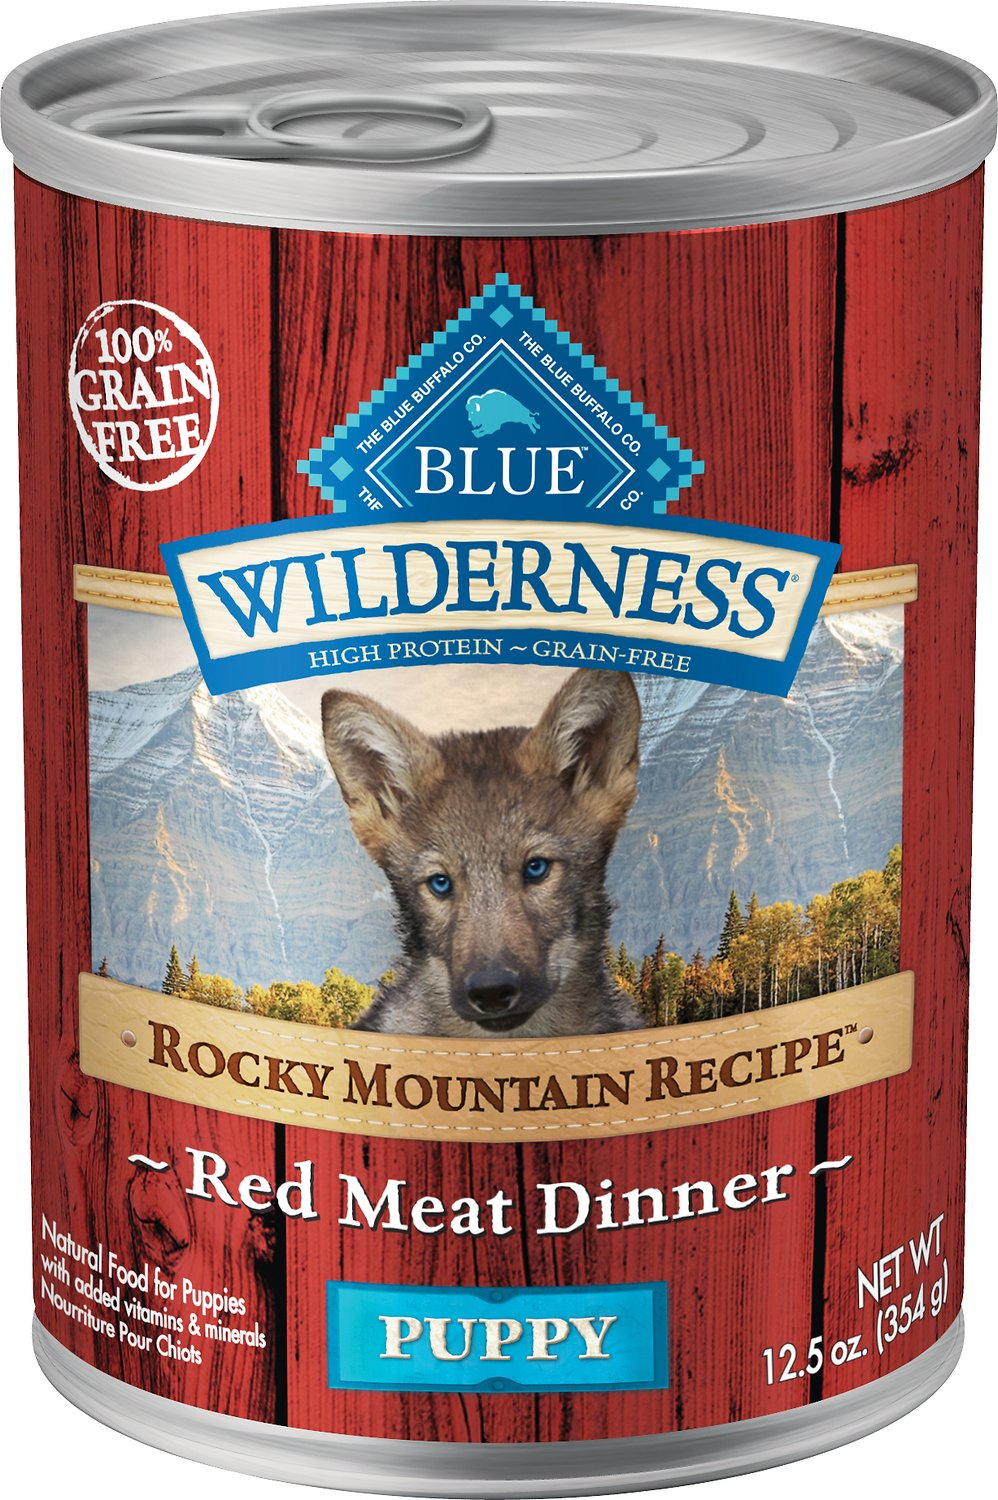 Blue Buffalo Wilderness Rocky Mountain Recipe Red Meat Dinner Puppy Grain-Free Canned Dog Food, 12.5-oz, case of 12